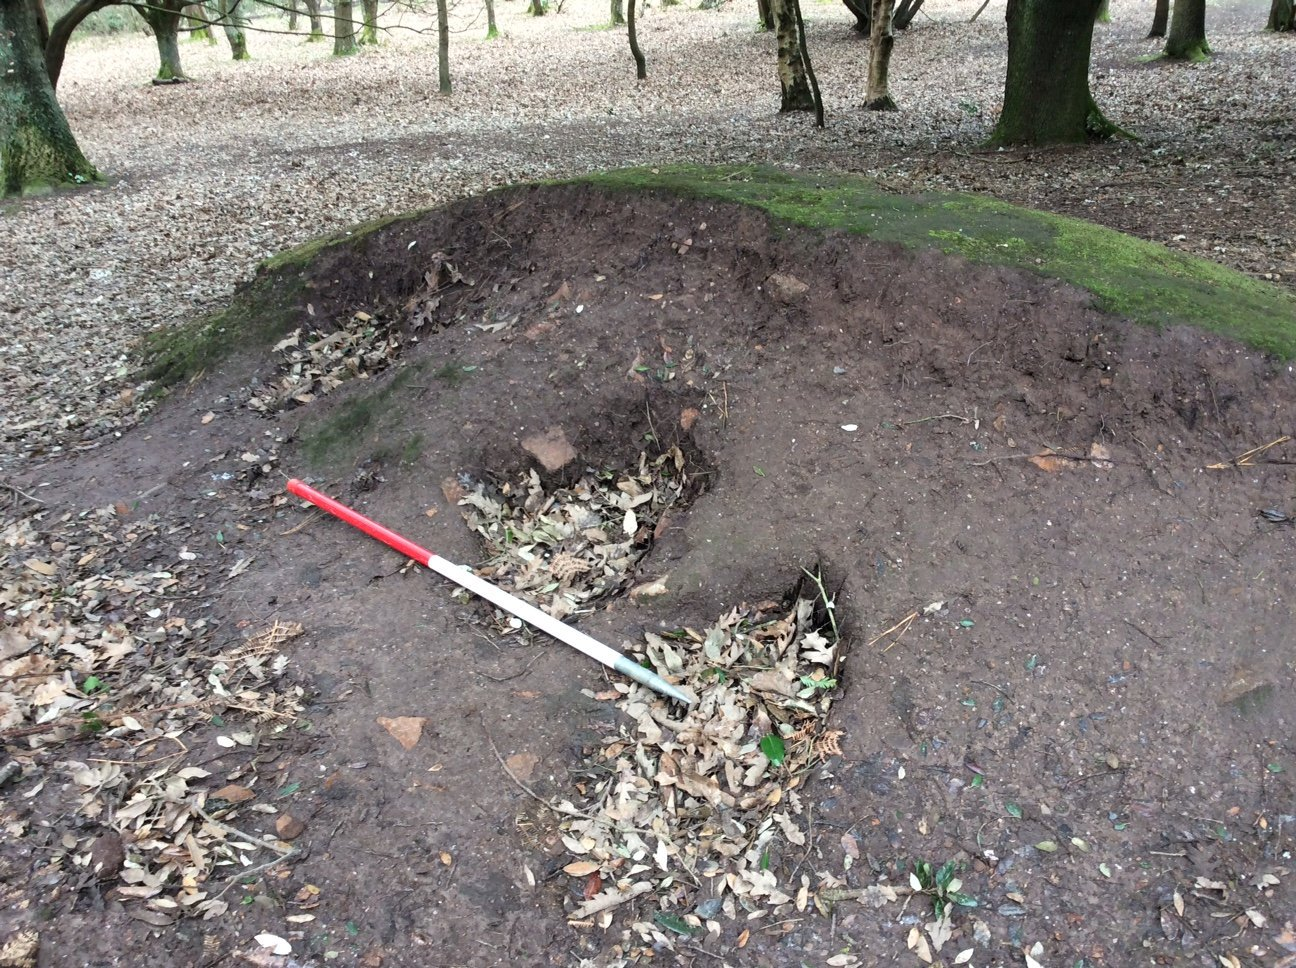 A metal detectorist has wrecked a 5,000 year-old stone monument by digging holes in a bid to uncover hidden artefacts. See SWNS story SWBRmetal; The man was spotted furiously digging at the Grade-I listed La Hougue de Vinde dolmen on the Channel Island of Jersey. The Neolithic site comprises a circular group of stones surrounded by a rubble wall near the southern tip of the island. An inspection found backfilled metal detecting holes in the centre of the chamber and targeted digging all over the site, particularly in the earthen banks and at the base of upright stones. Heritage organisations on Jersey say they are ?shocked and saddened? by the damage ?for what appears to be personal gain?.